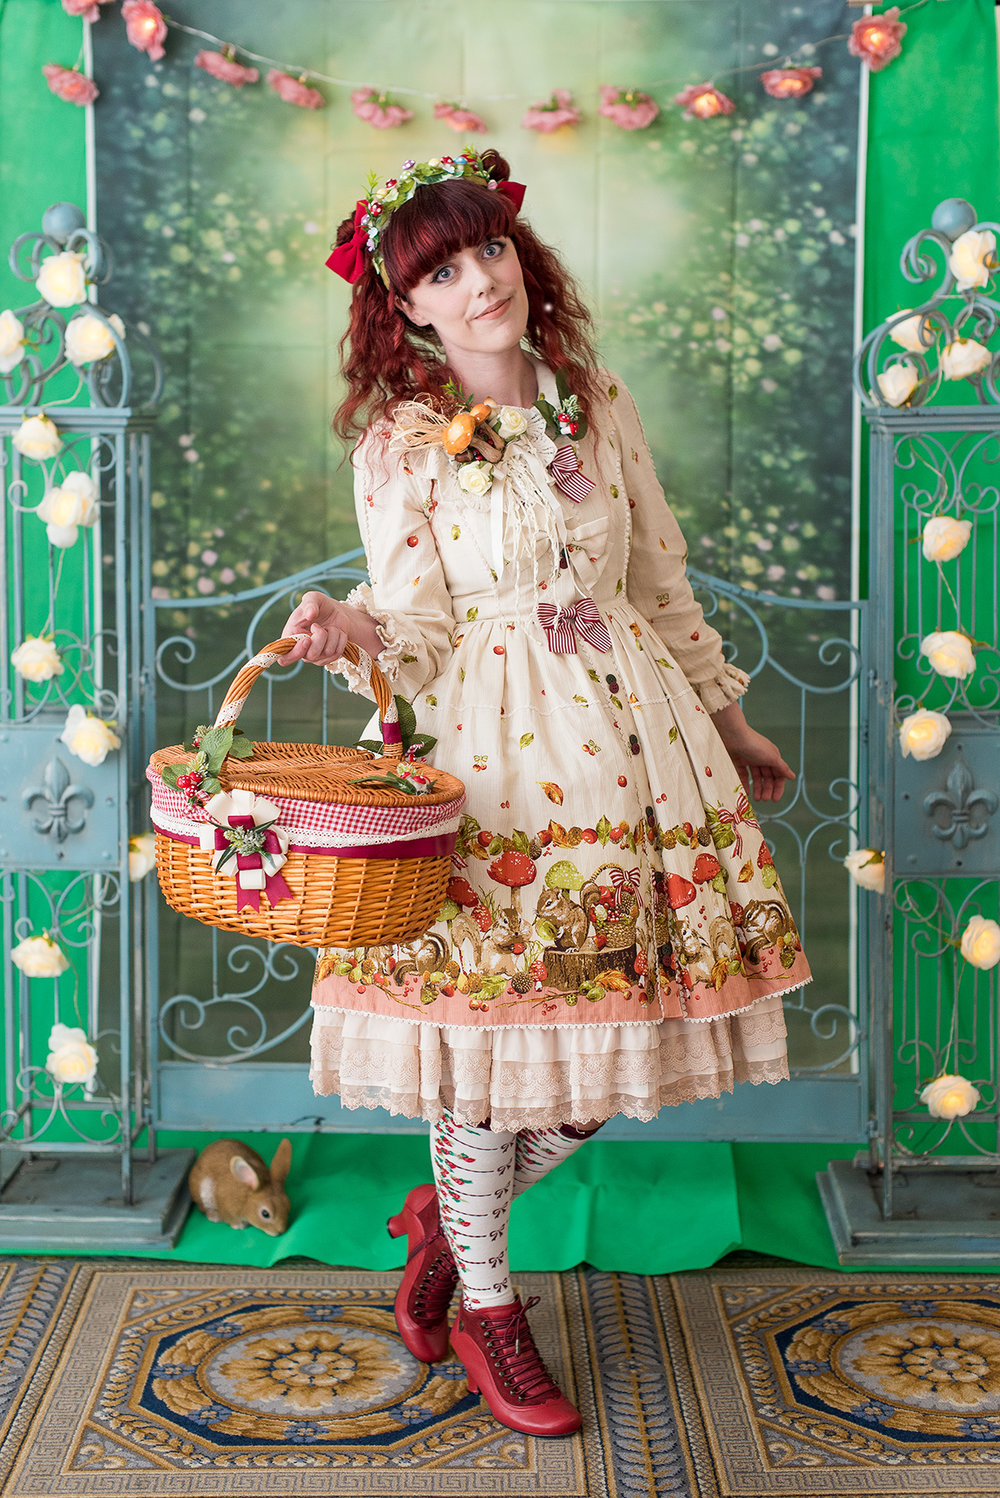 Emily Faulder Photos Wicked and Whimsy @emily_f_photos 2.jpg